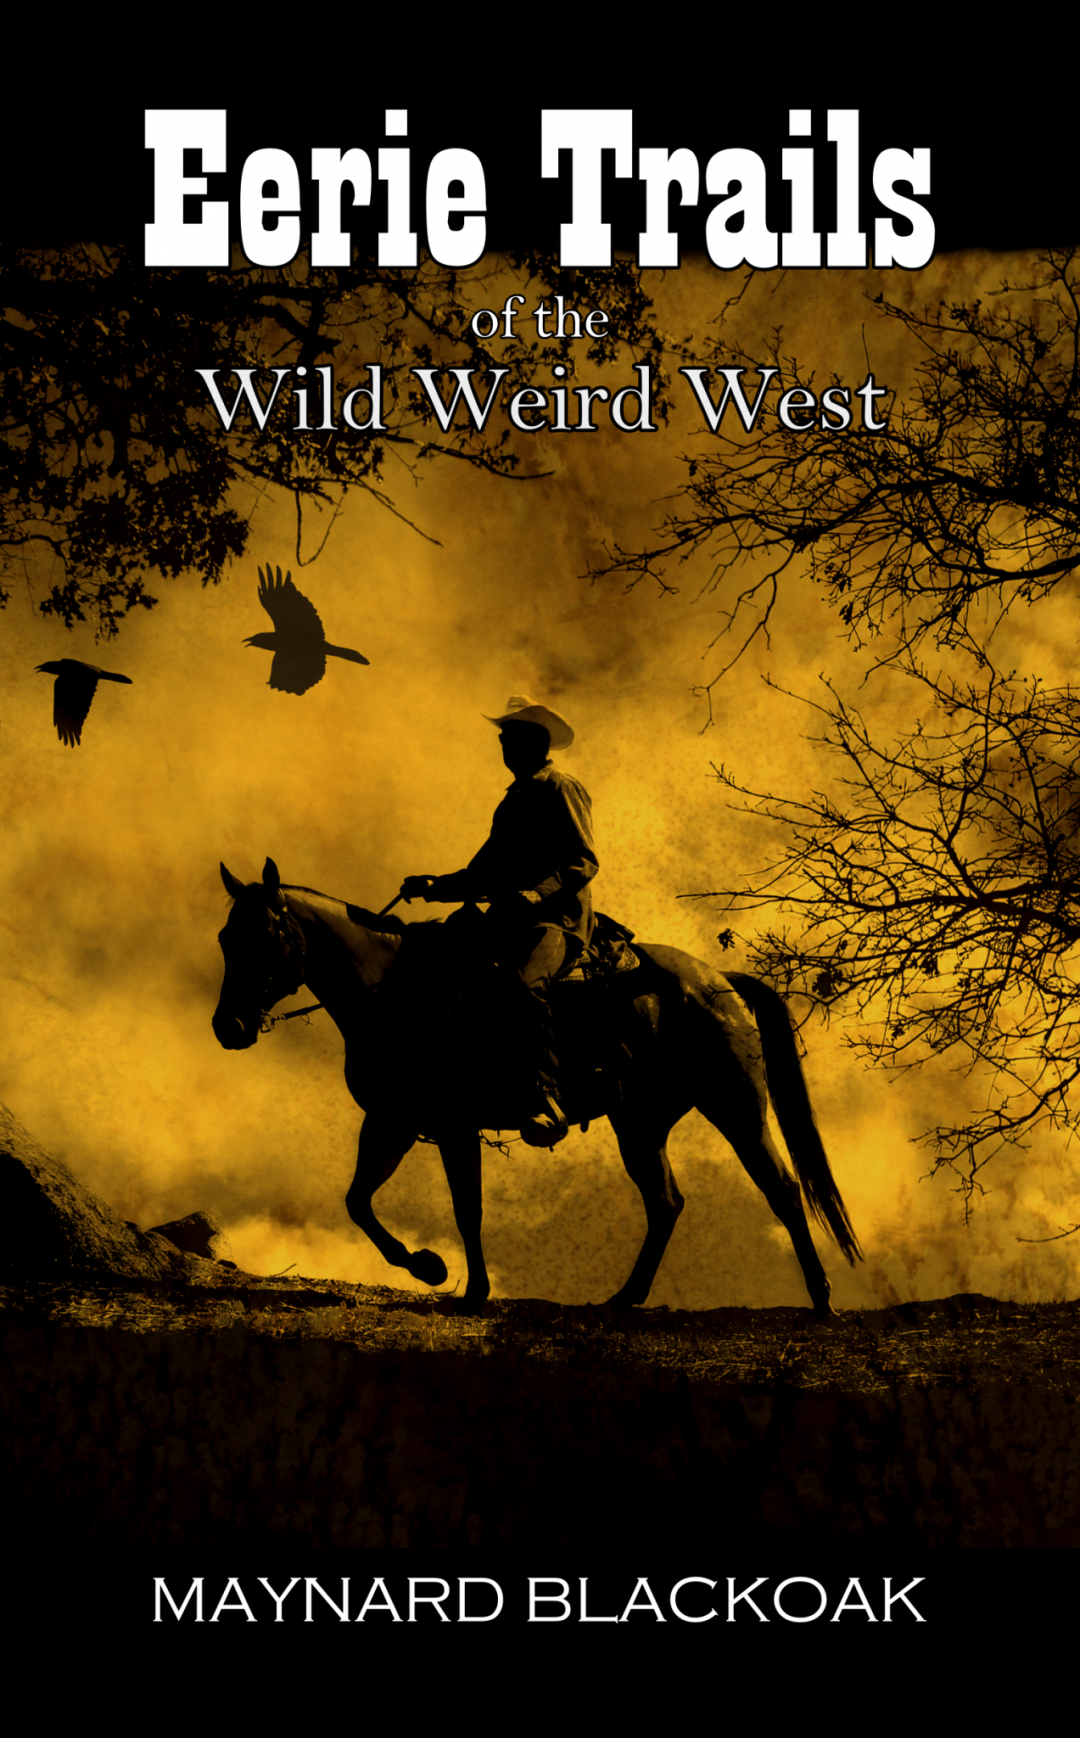 Eerie Trails of the Wild Weird West by Maynard Blackoak – Guest Post